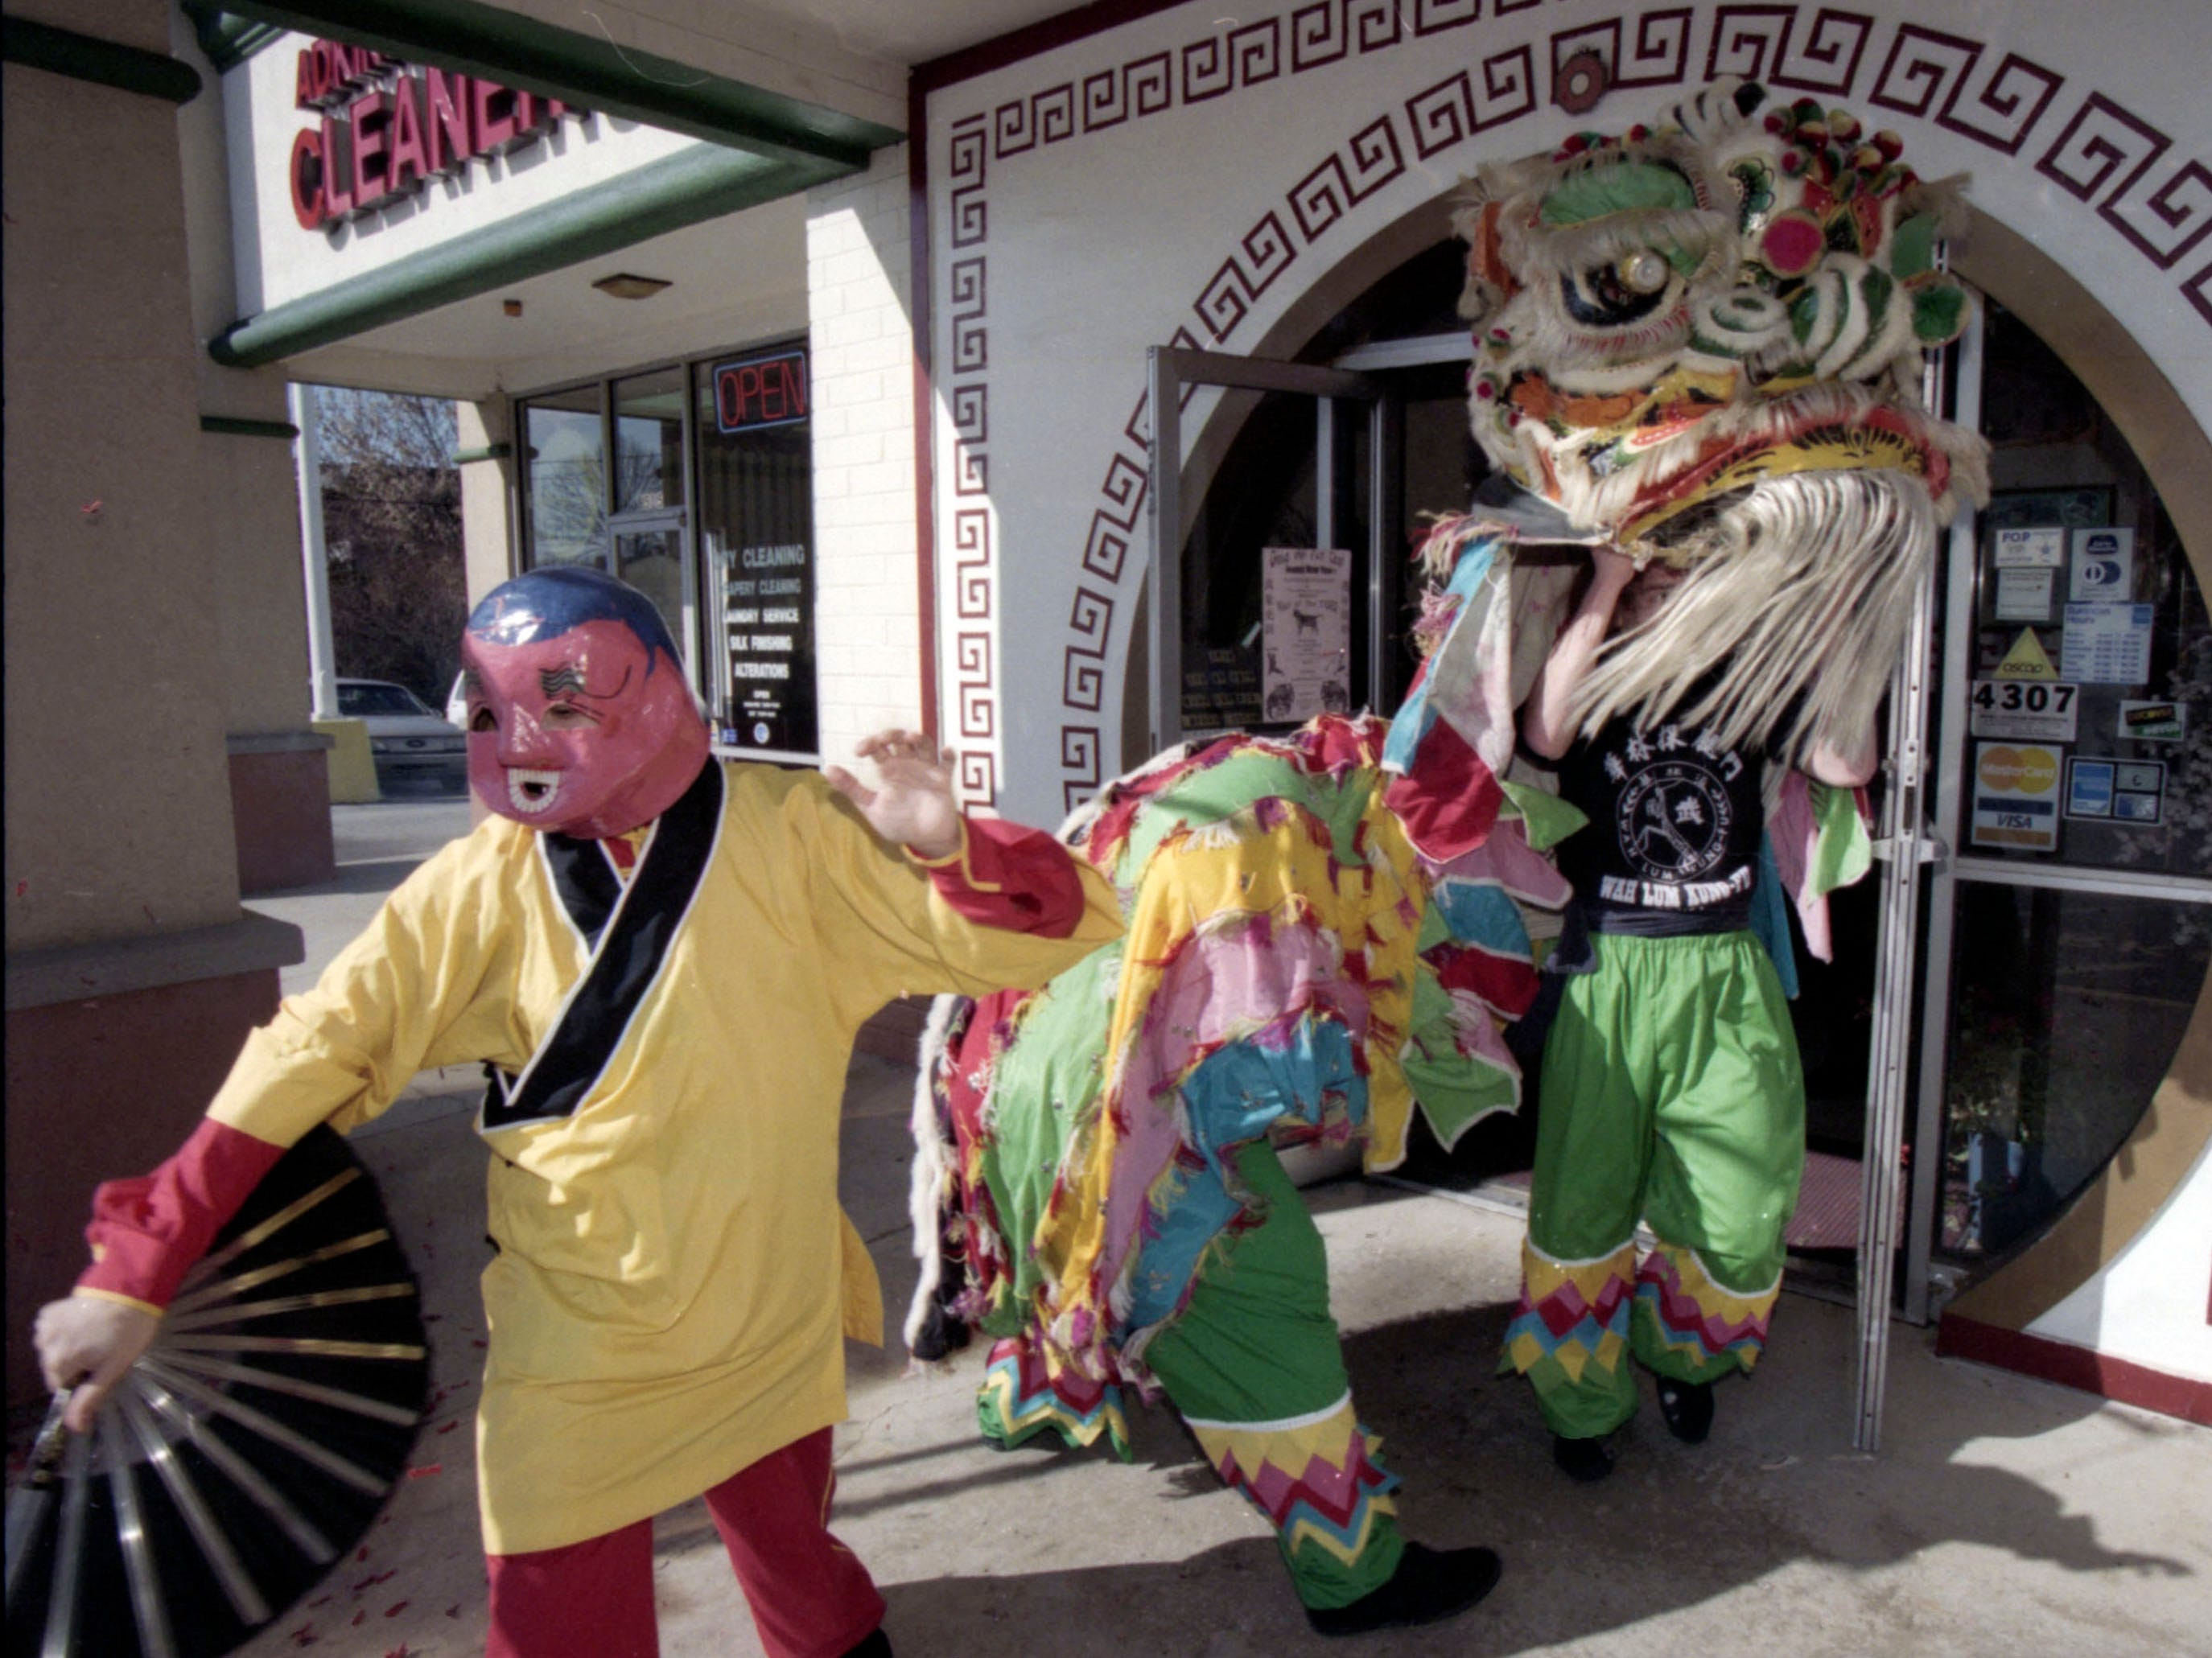 Marian Allen, left, leads a dragon out the front doors of Canton Restaurant in West Knoxville during a Chinese New Year celebration in 1998.